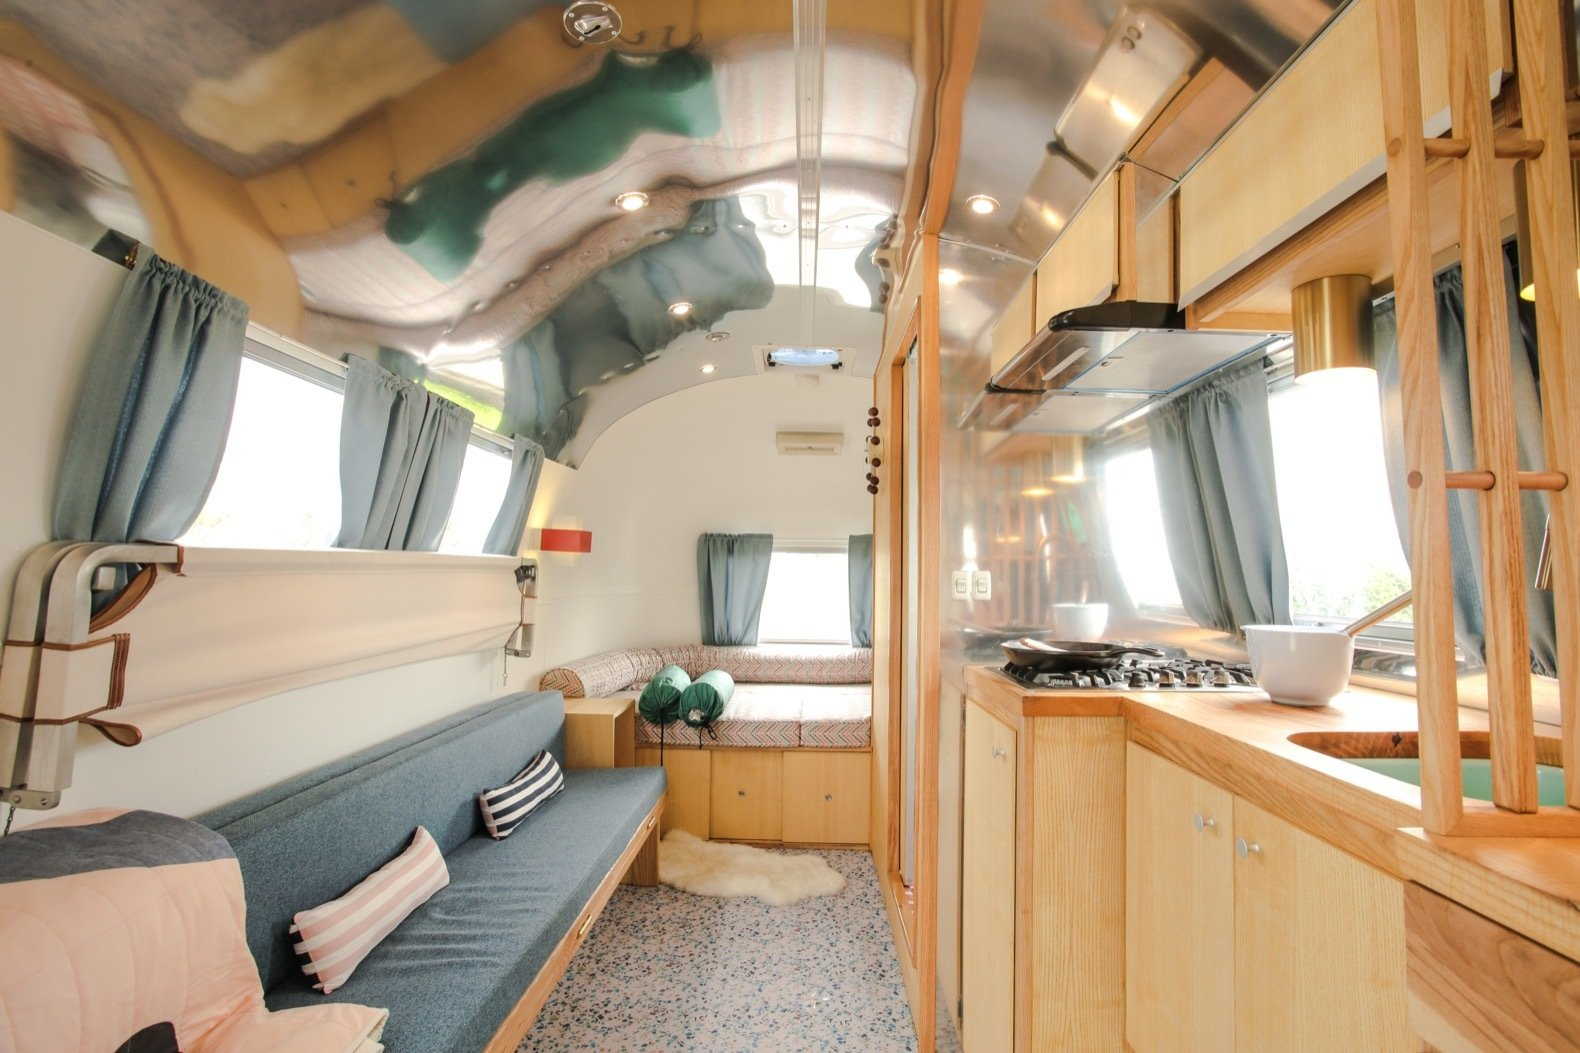 Furnishings fold away to create a sense of spaciousness in the compact Airstream. The vinyl floor is from Altra floor in the UK.